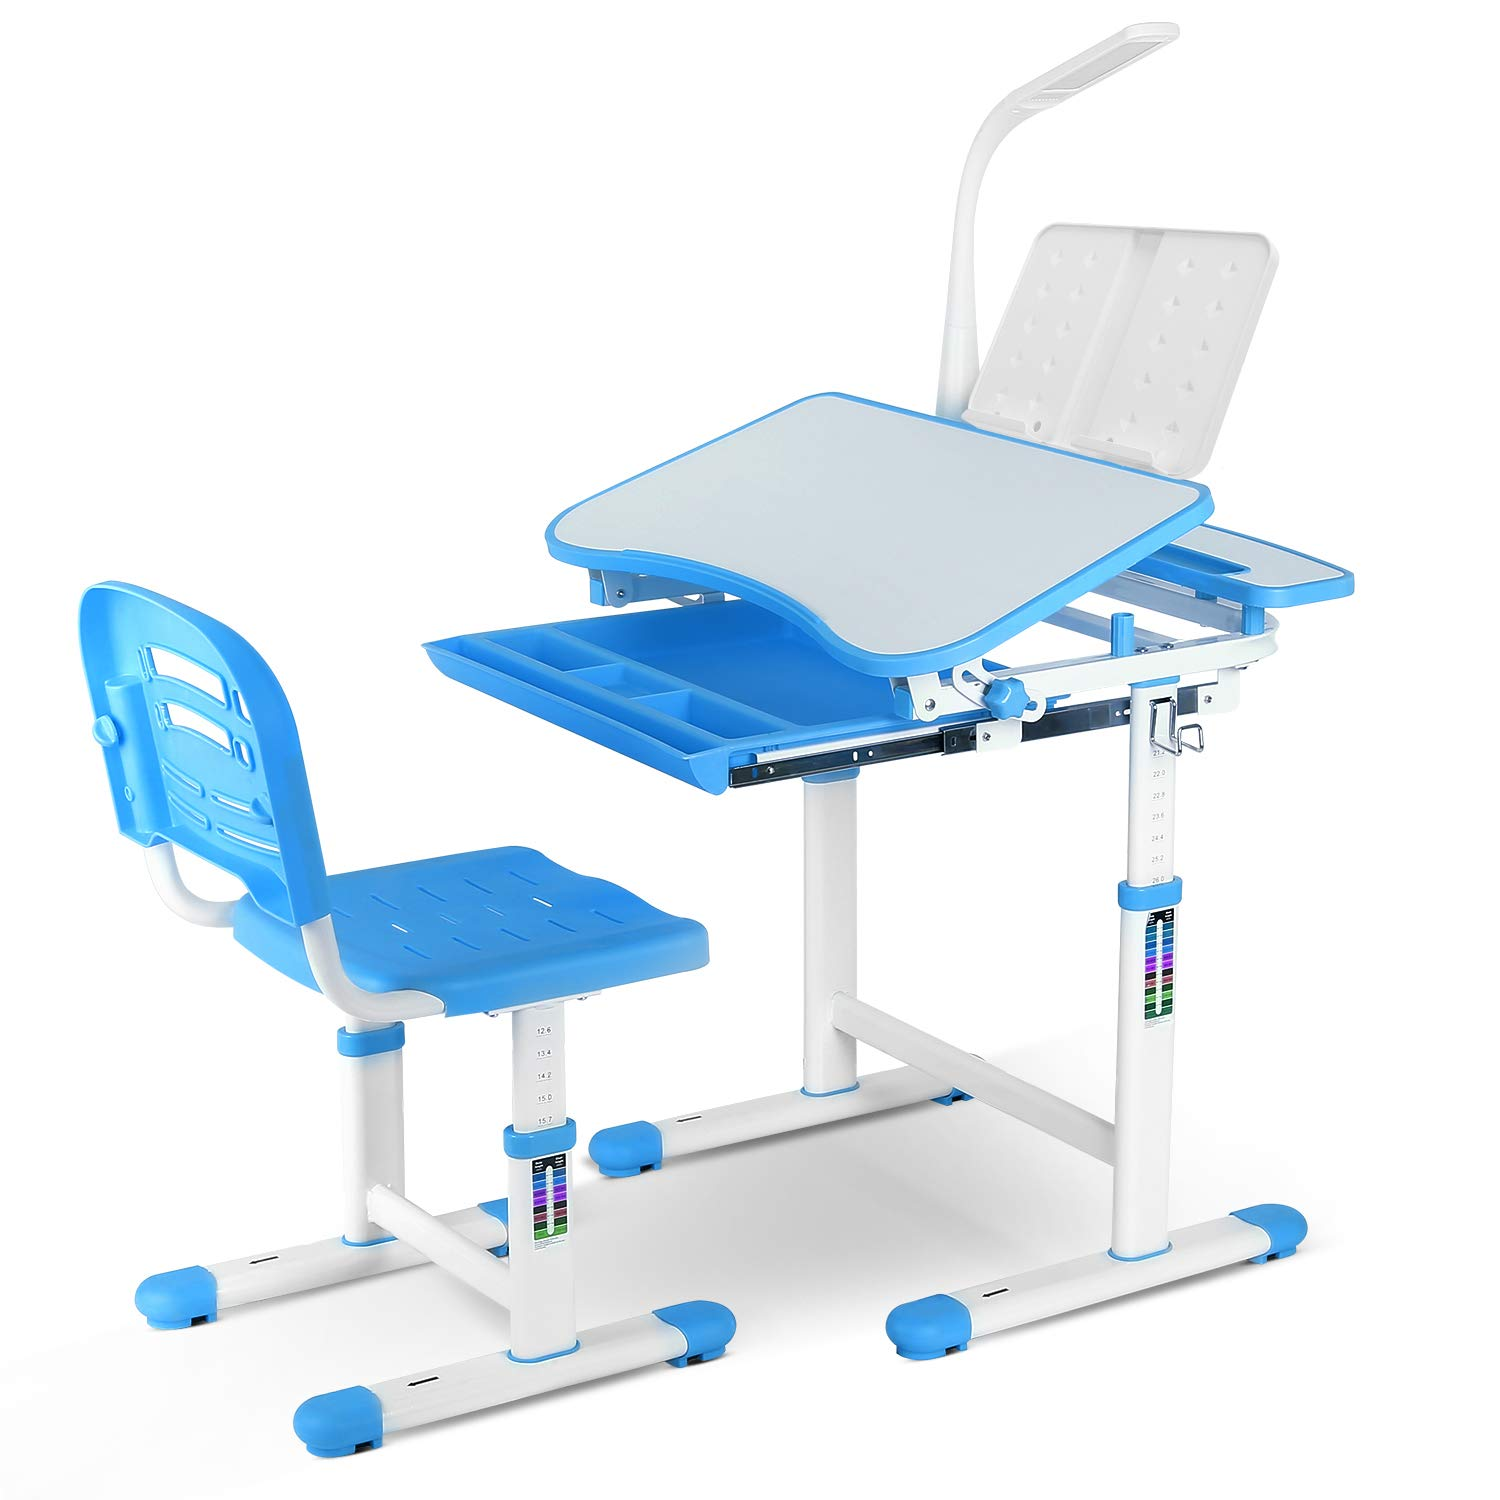 POTBY Kids Desk and Chair Set, Height Adjustable Children Study Table with Wood Tiltable Anti-Reflective Tabletop, Bookstand, Pull-Out Drawer Storage and Touch Led for School Students (Blue) by POTBY